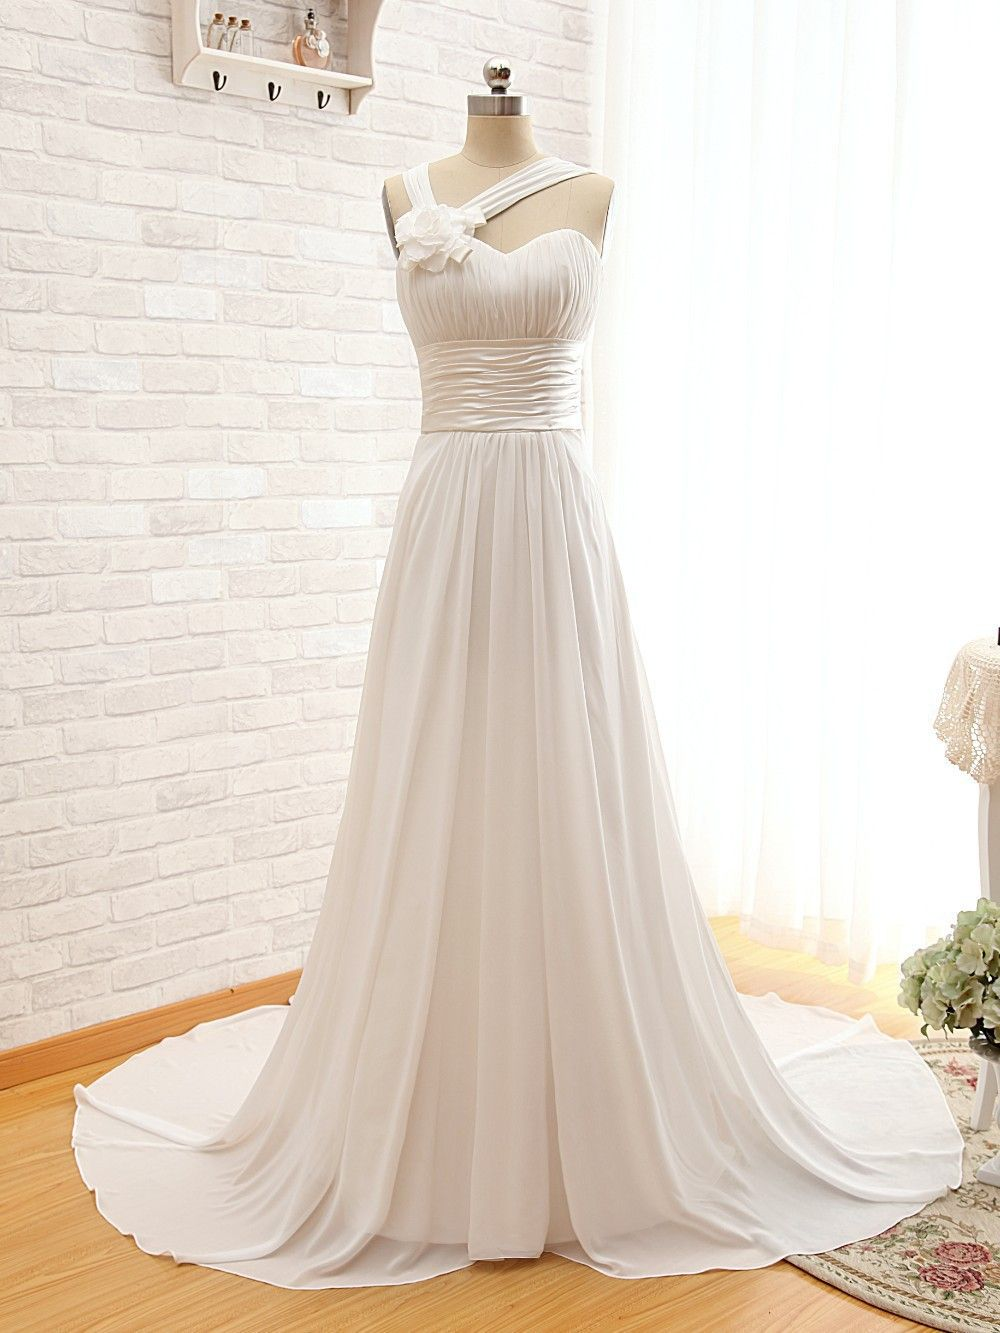 Simple elegant bridal dress wedding dress new aline sweetheart